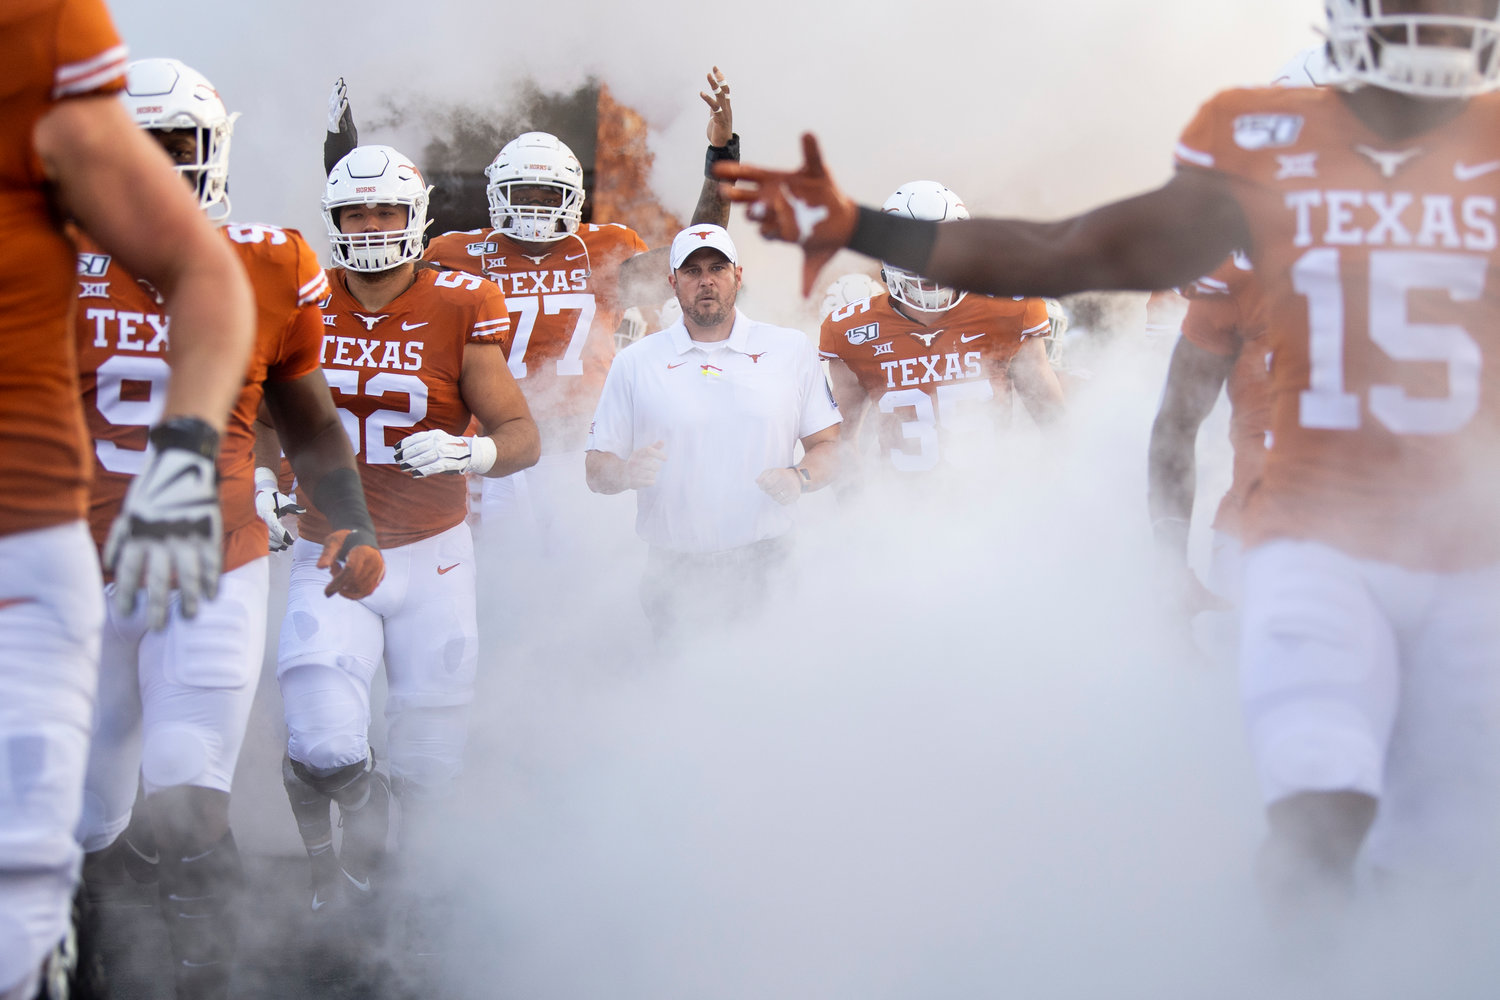 Tom Herman and Texas needed a fourth-quarter drive to beat Kansas last weekend. The No. 15 Longhorns head to Fort Worth to take on TCU Saturday afternoon.